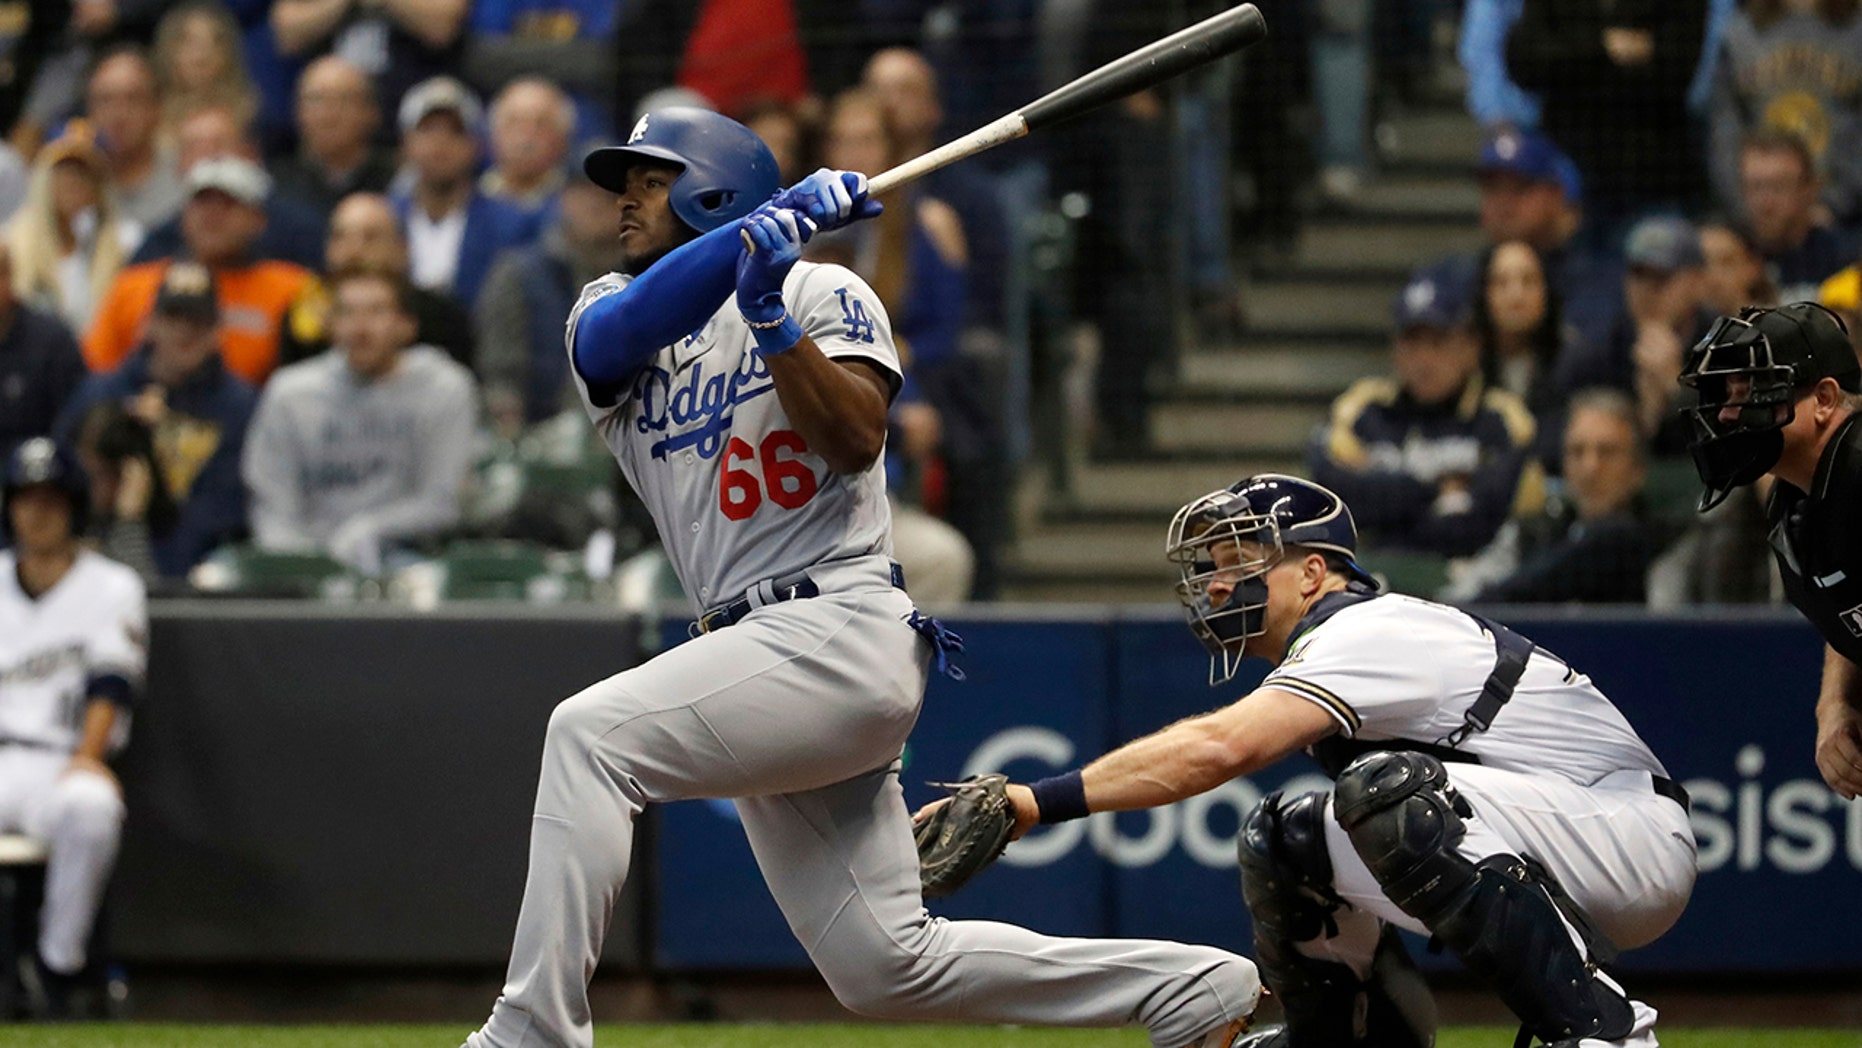 Los Angeles Dodgers' Yasiel Puig (66) hits a three-run home run during the sixth inning of Game 7 of the National League Championship Series baseball game against the Milwaukee Brewers Saturday, Oct. 20, 2018, in Milwaukee.